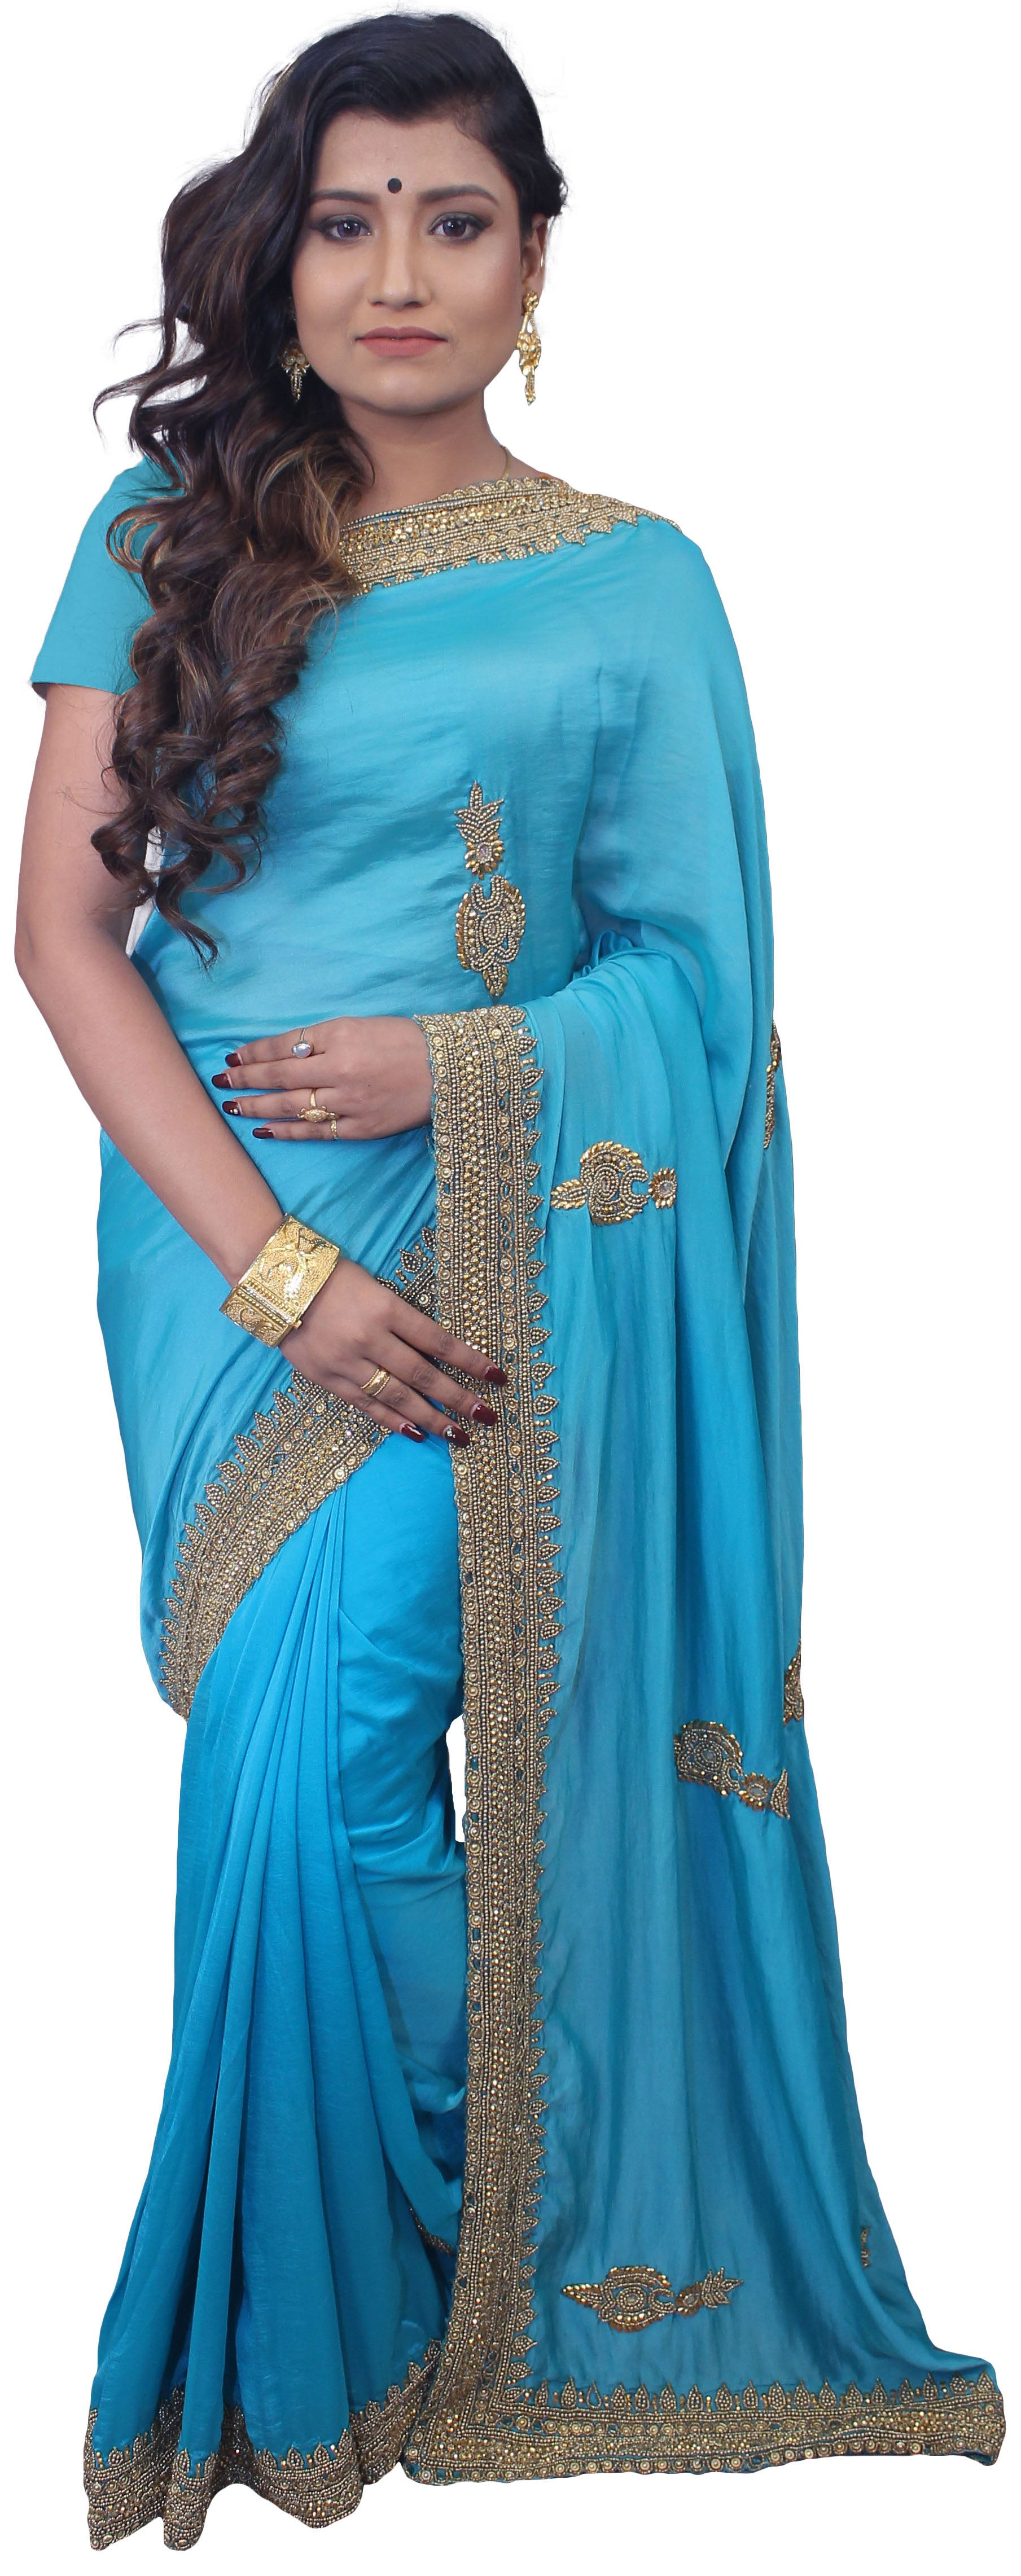 Blue Designer Wedding Partywear Silk Hand Embroidery Beads Stone Work Kolkata Saree Sari E454